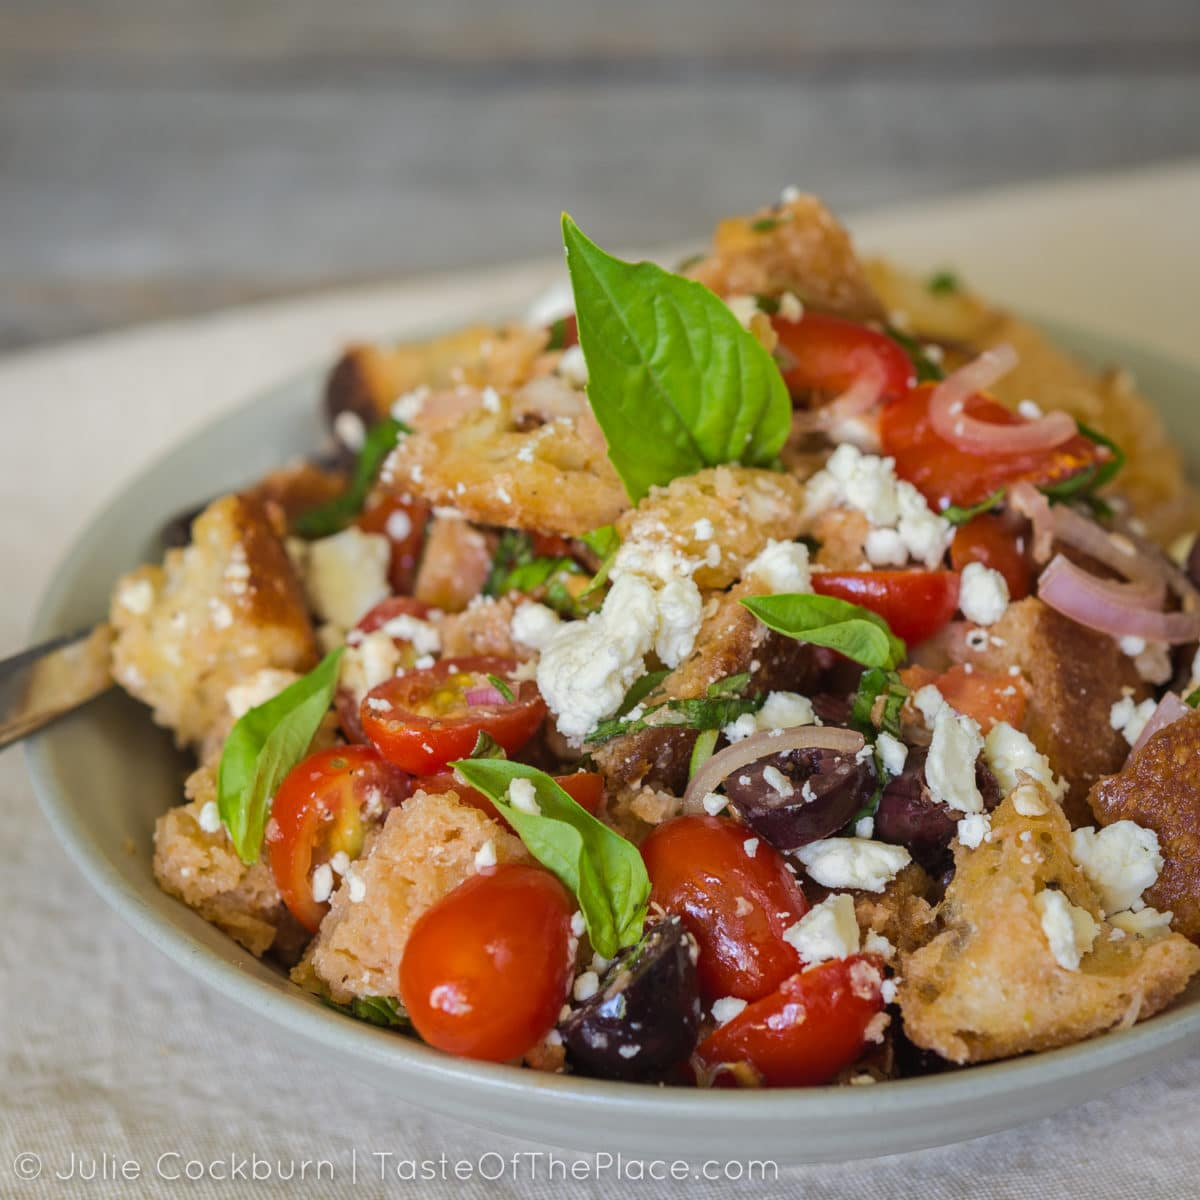 Panzanella with goodies at TasteOfThePlace.com